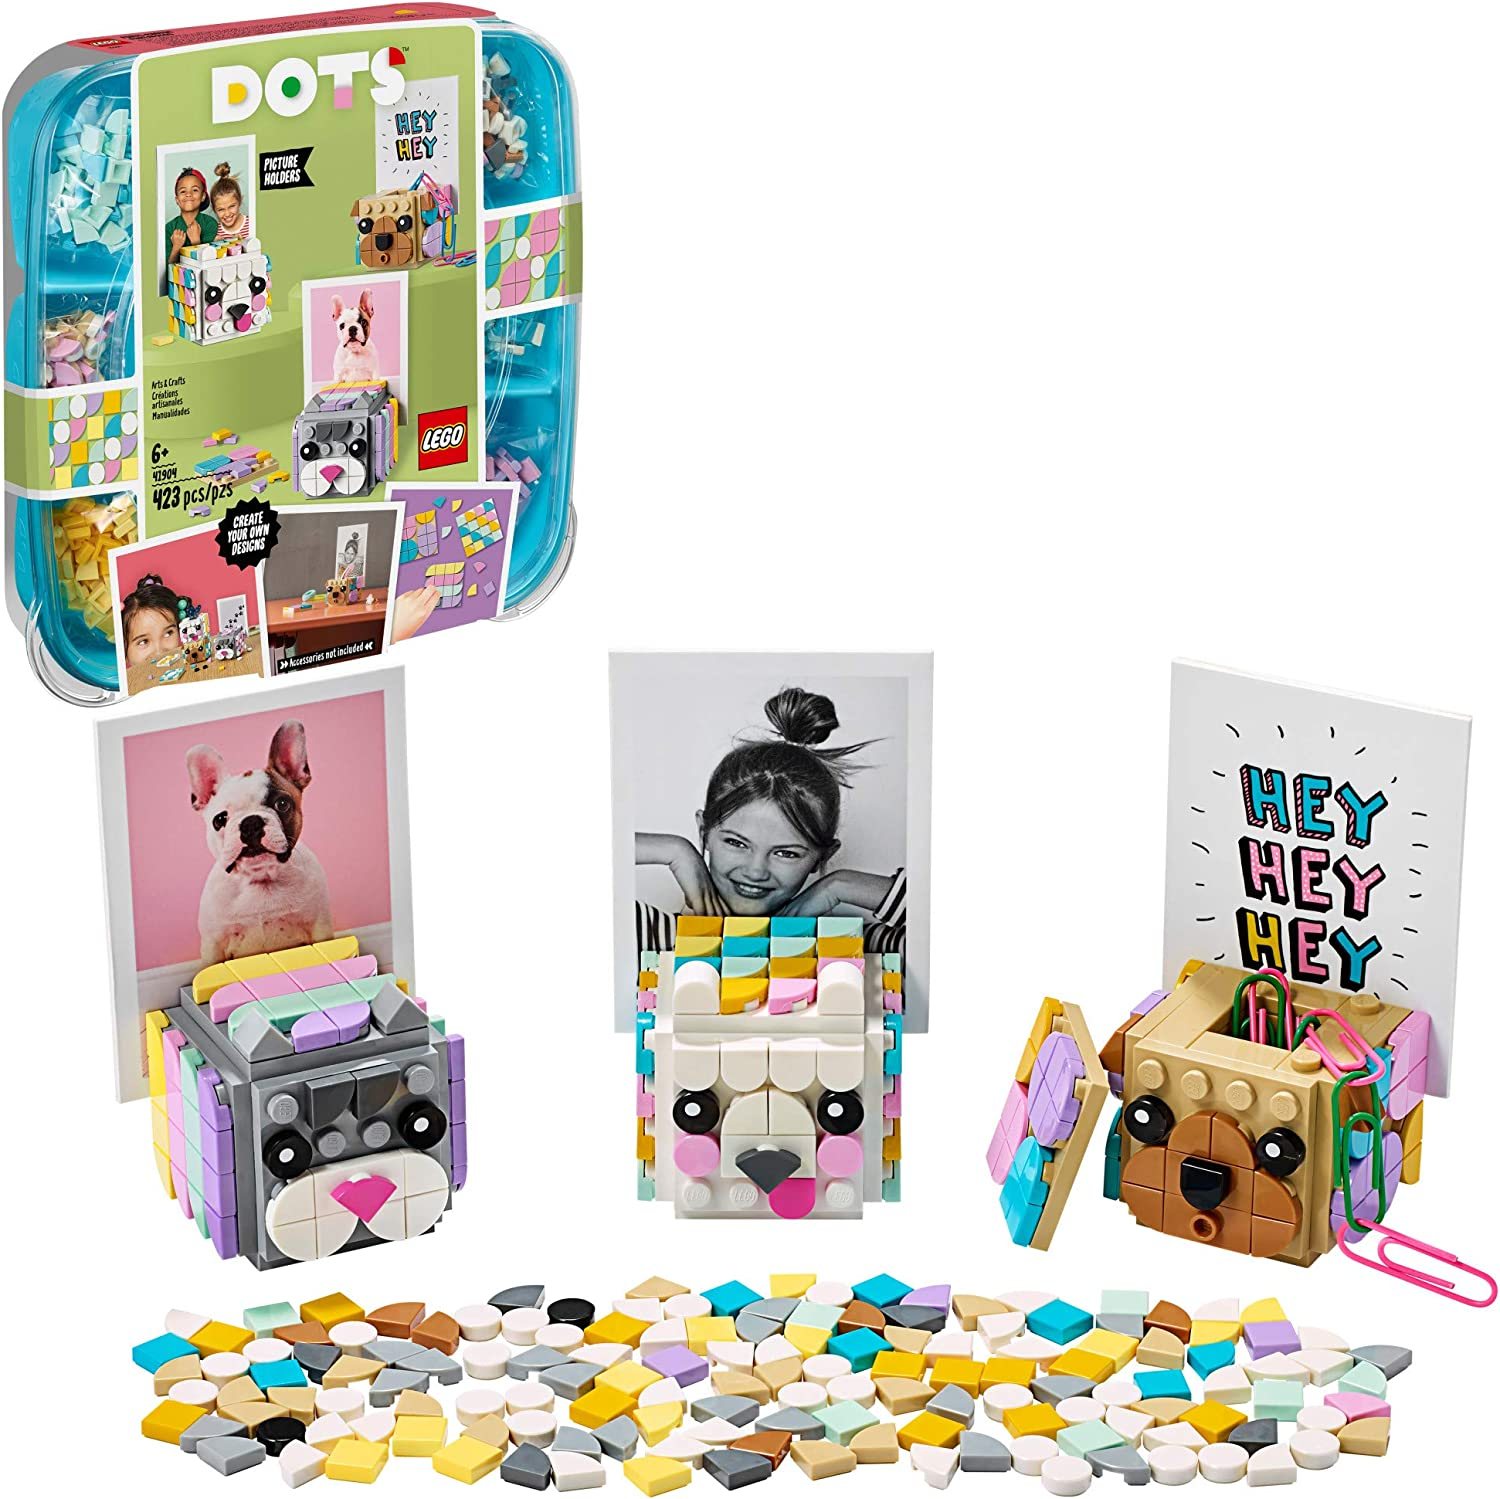 LEGO DOTS Animal Picture Holders 41904 DIY Craft; A Fun Project for Kids who Like Making Creative Room Decor, That Also Makes a Cool Holiday or Birthday Gift, New 2020 (423 Pieces)